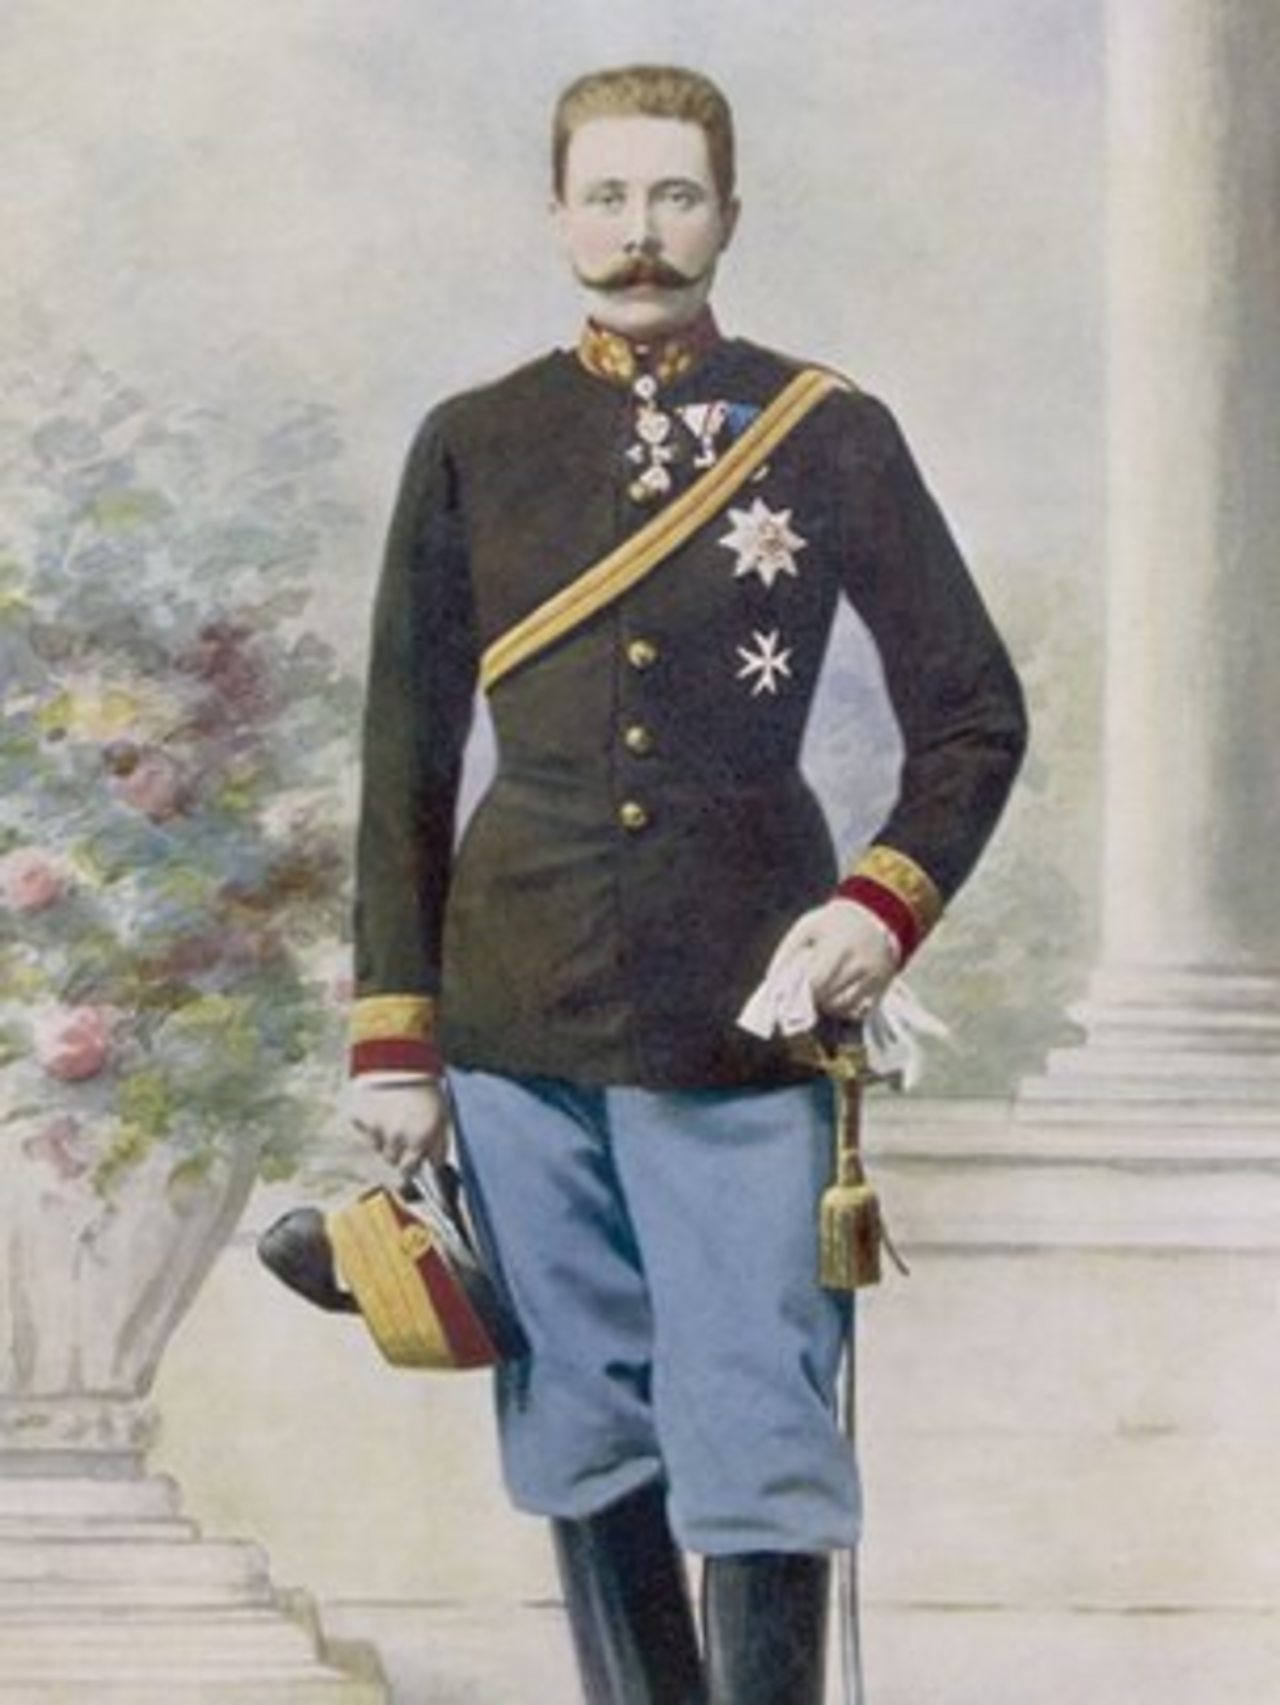 A portrait of Archduke Franz Ferdinand, the heir to the throne of Austria-Hungary